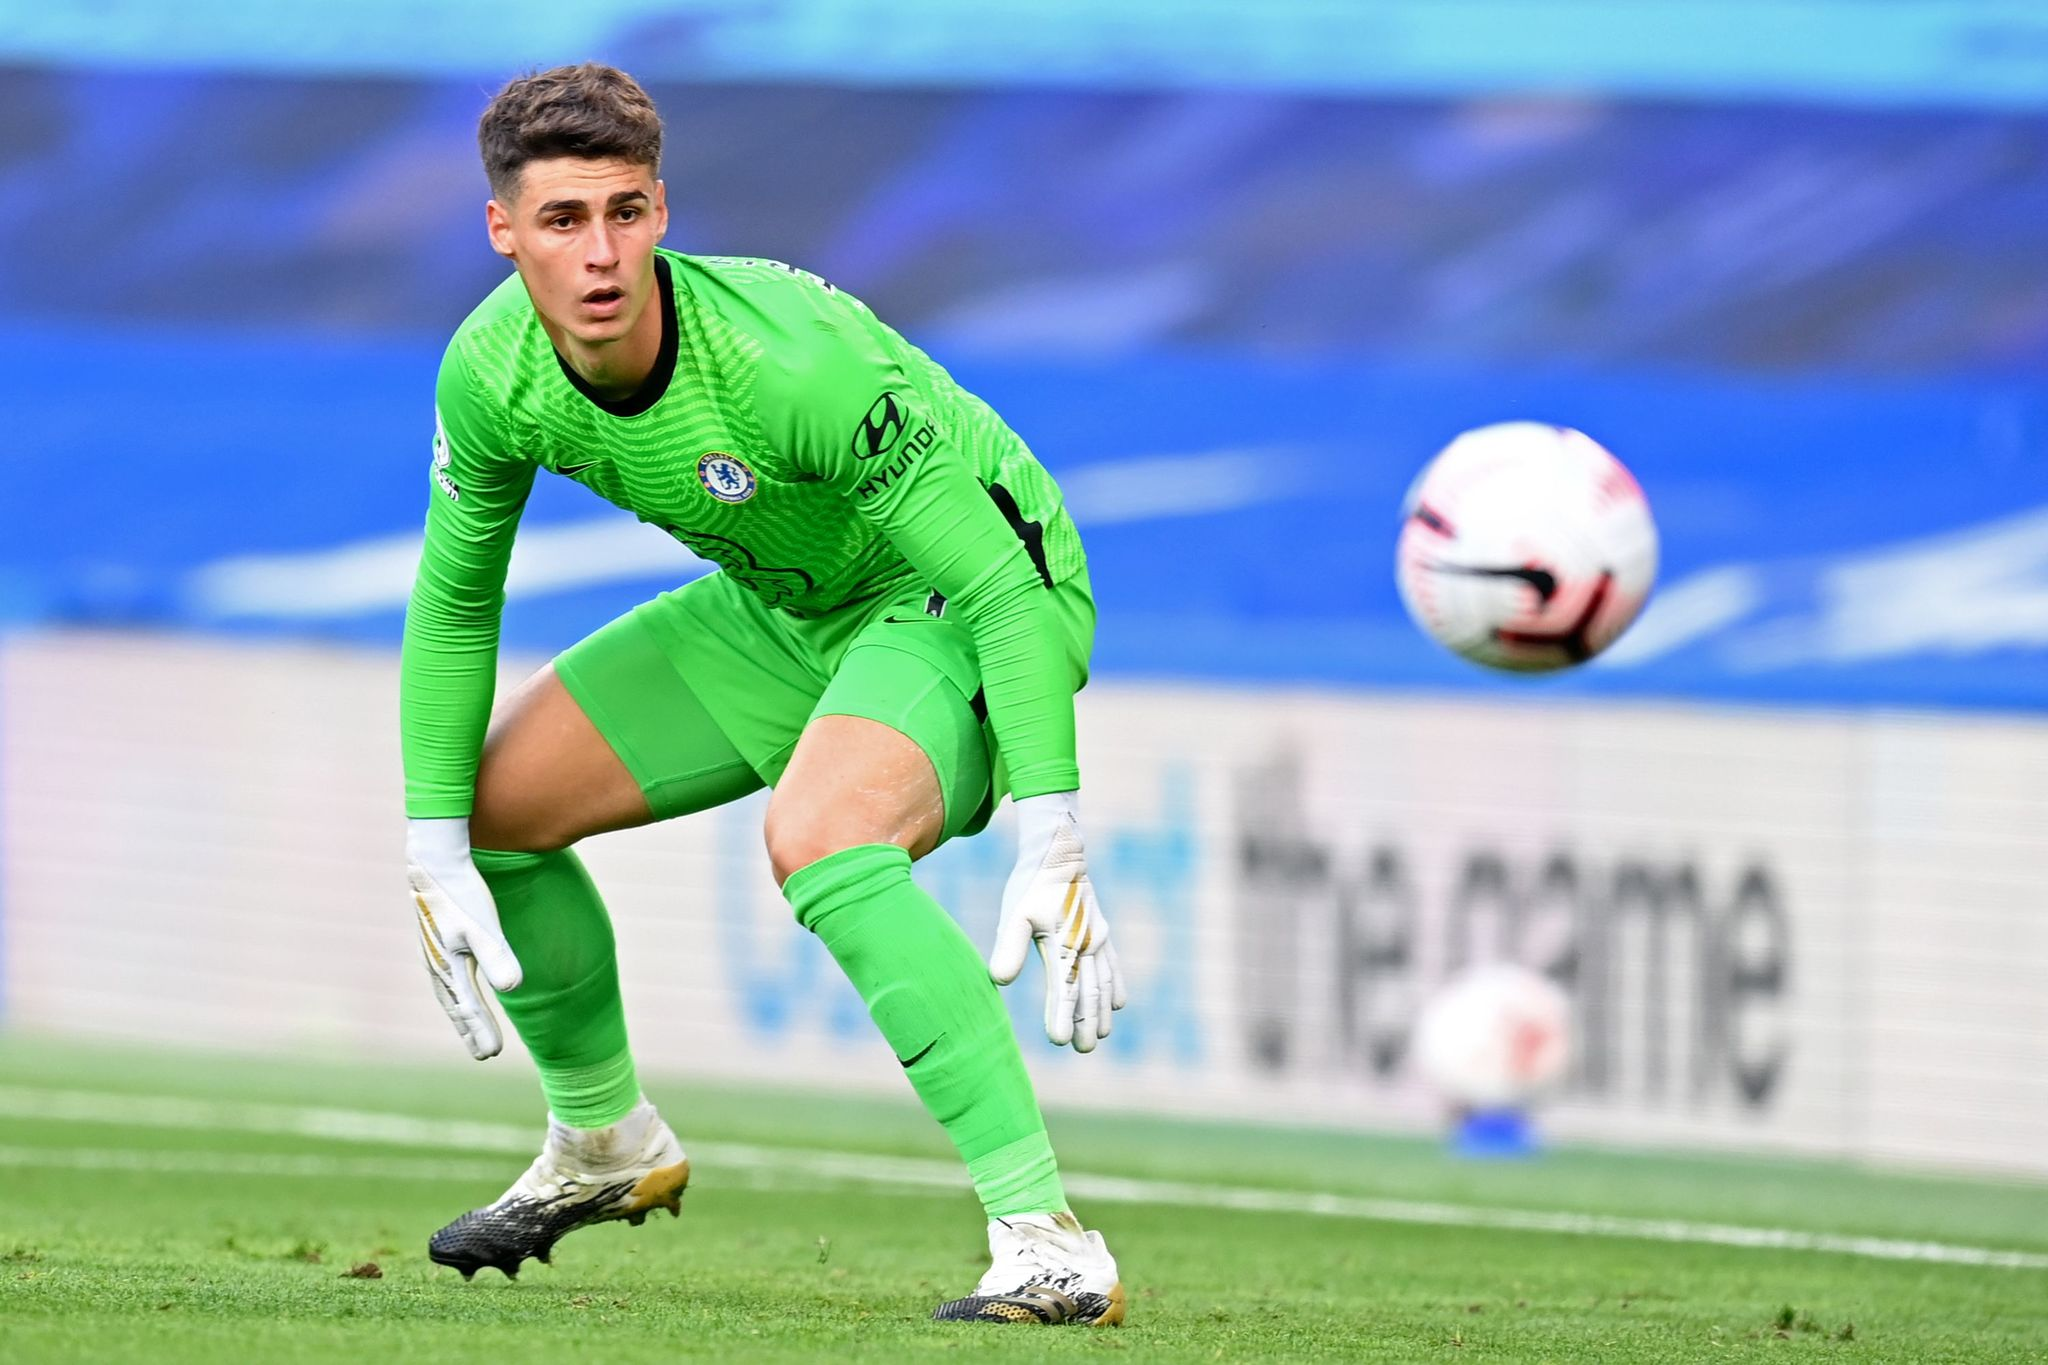 Why has Kepa Arrizabalaga's Chelsea career been derailed? And how can he  return to form? | MARCA in English